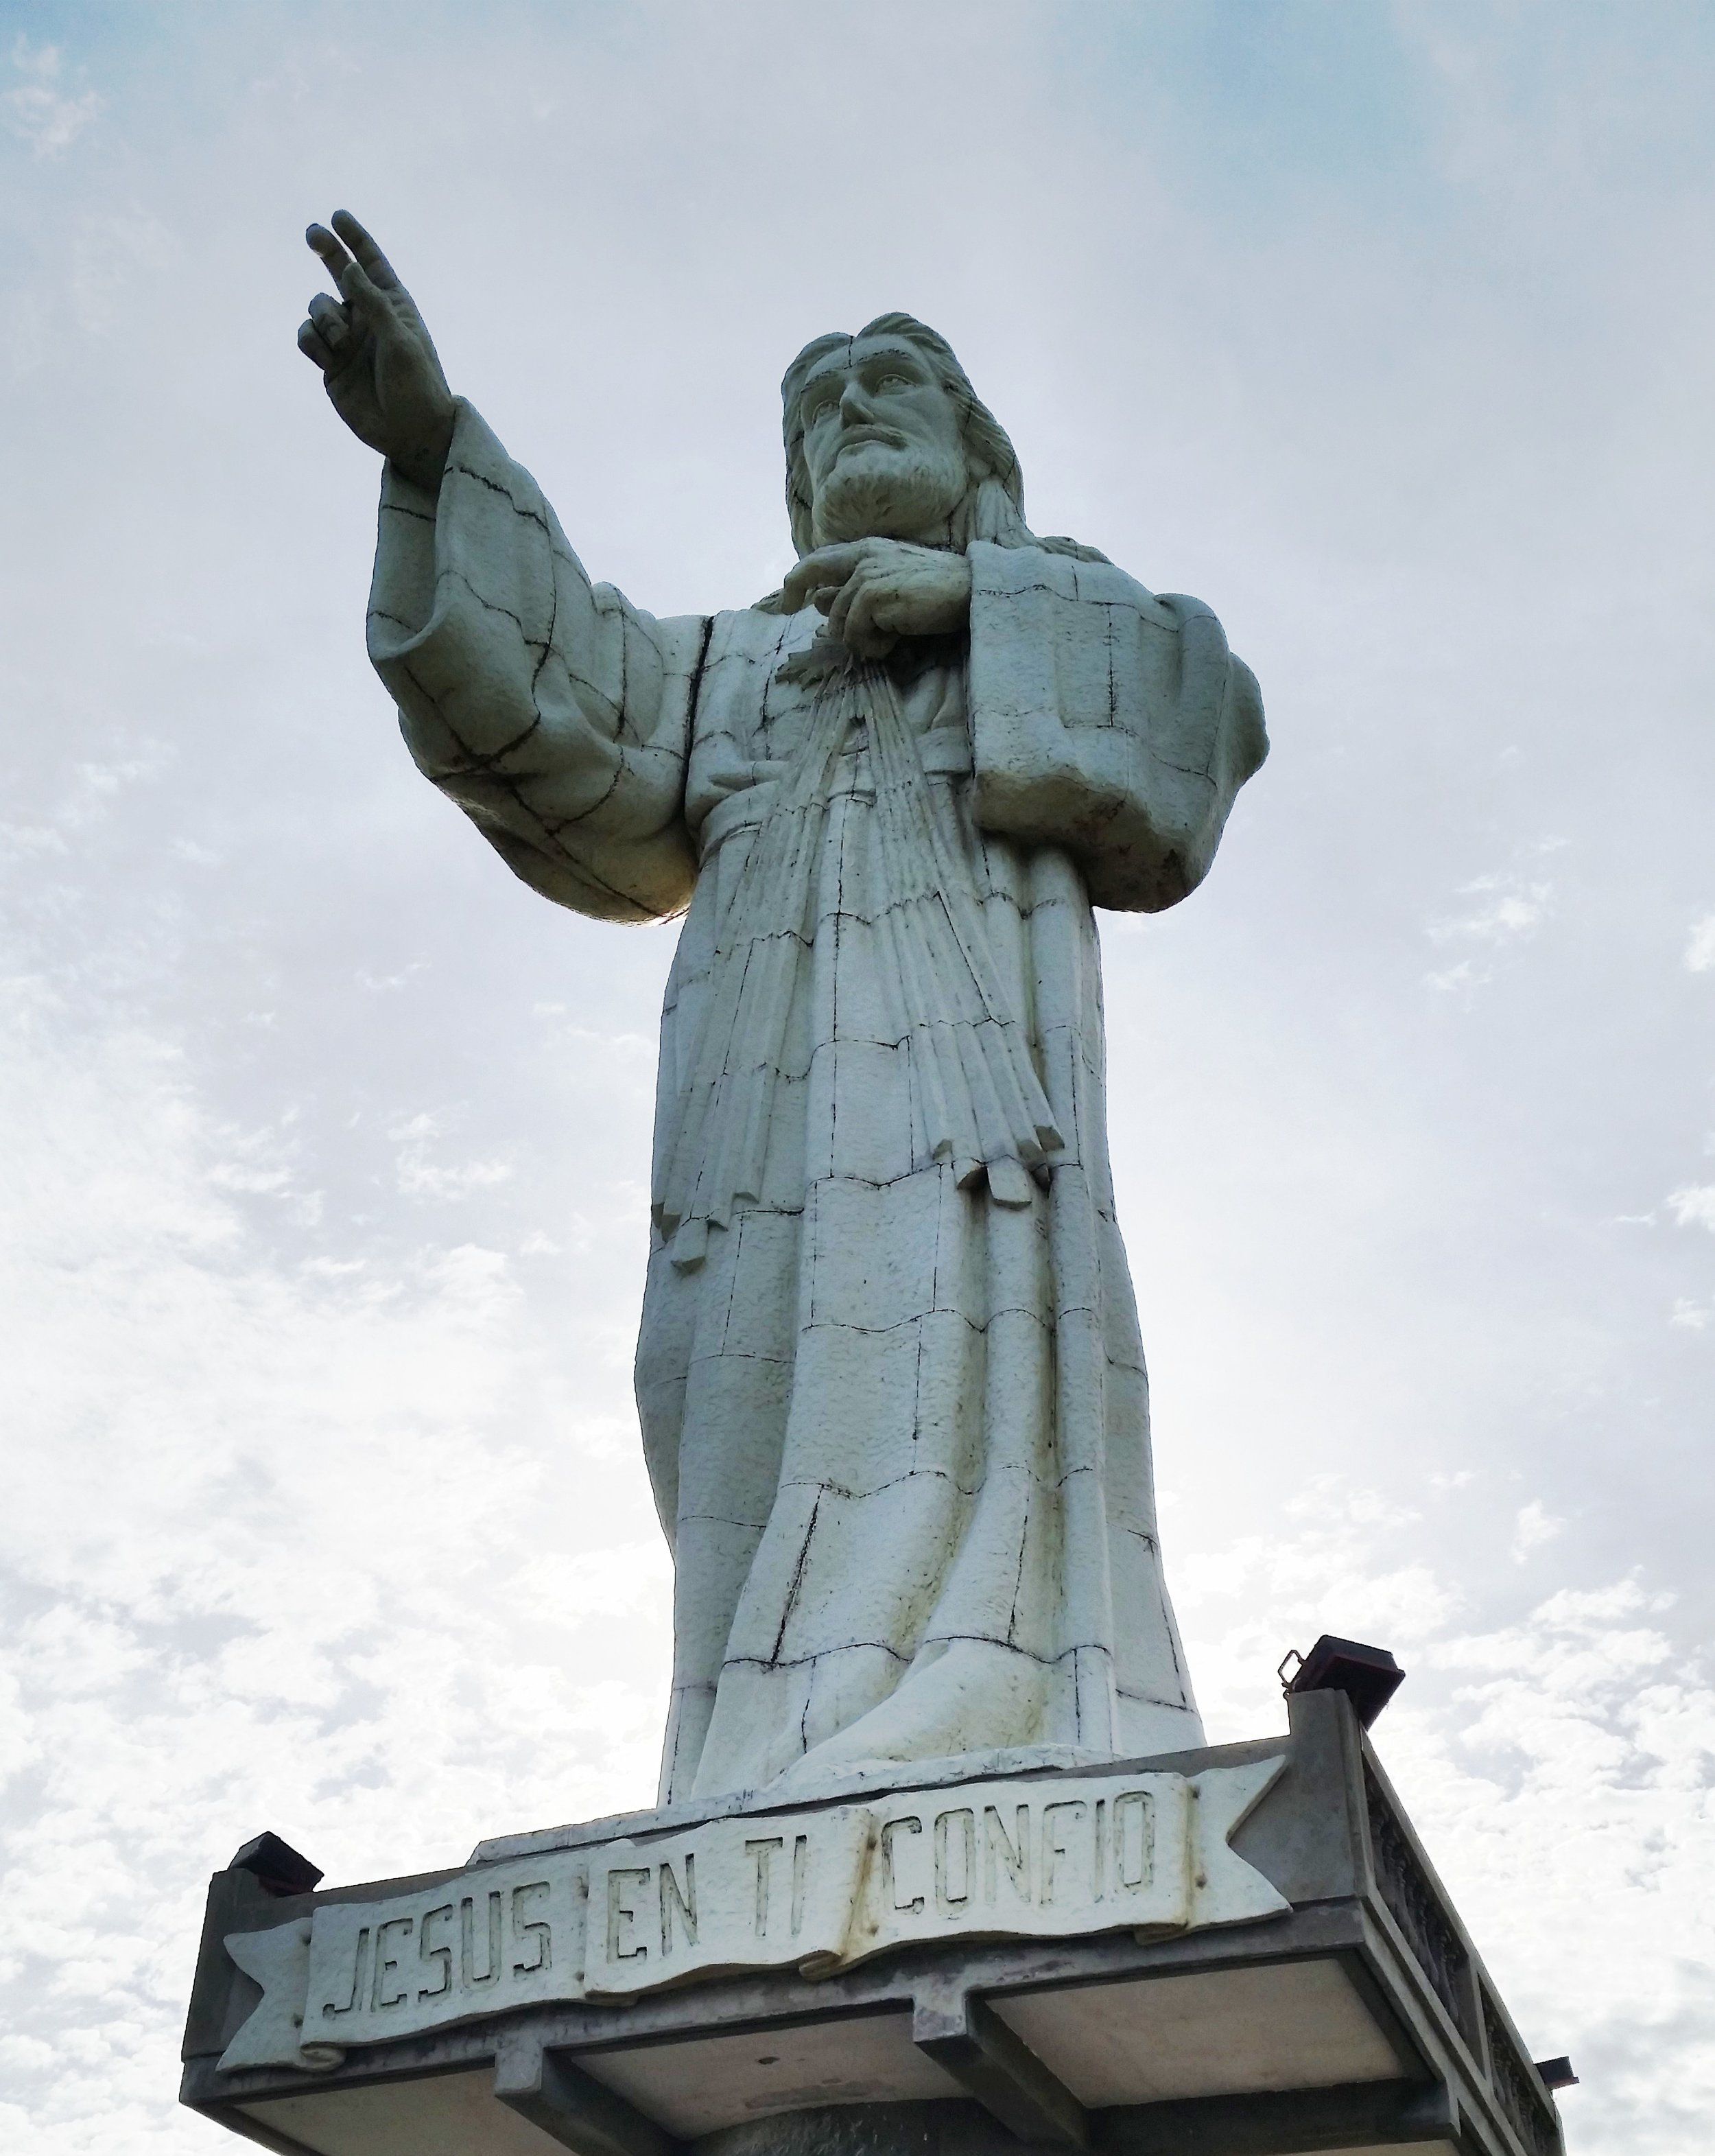 The Christ of Mercy Statue (the inscription translates to Jesus I Trust in You)